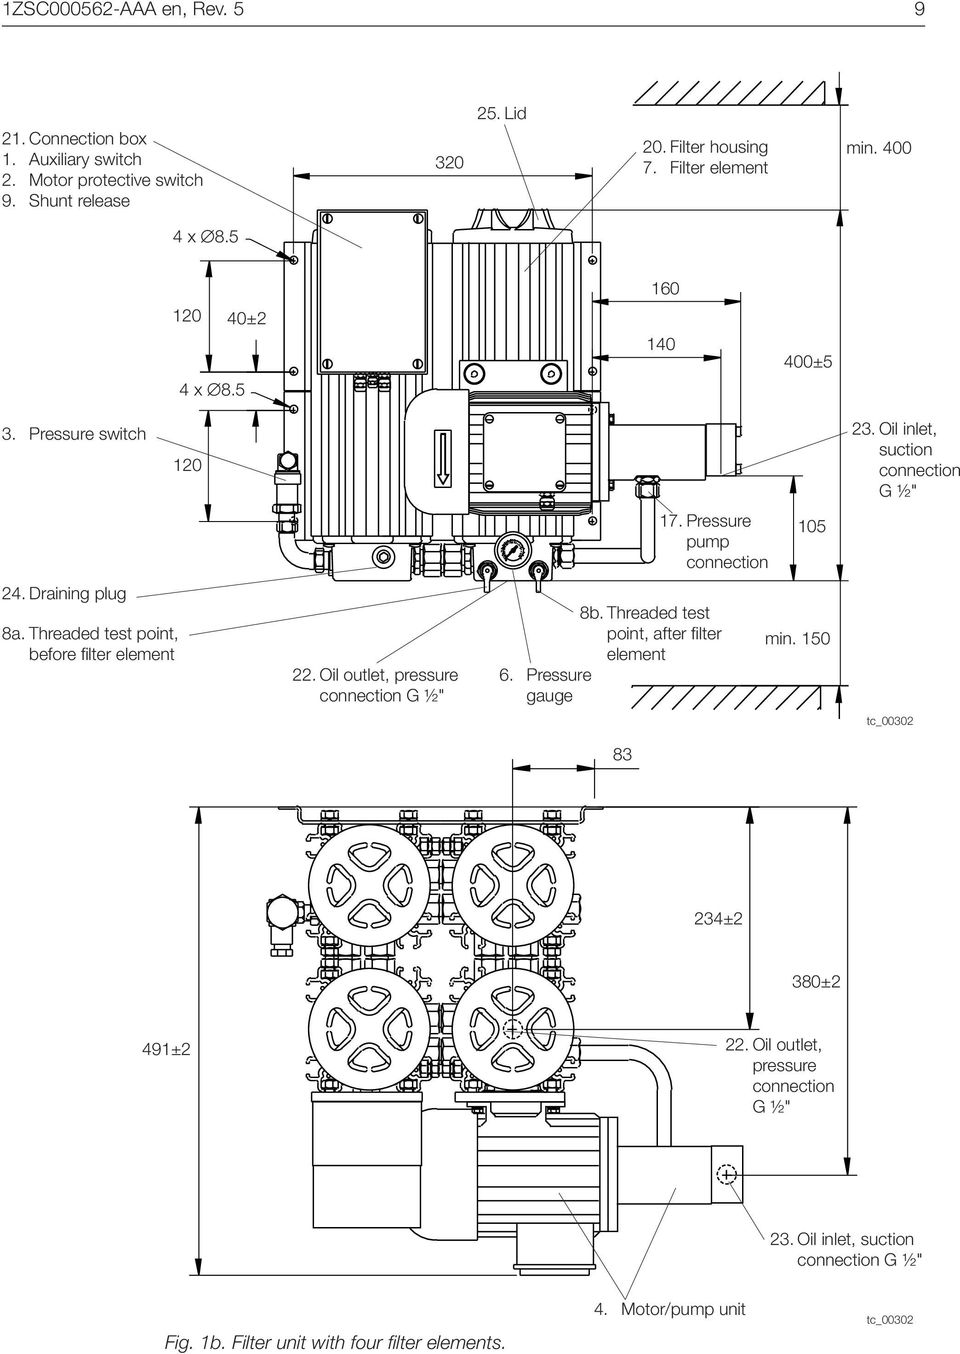 oil filter unit for on-load tap-changers manual